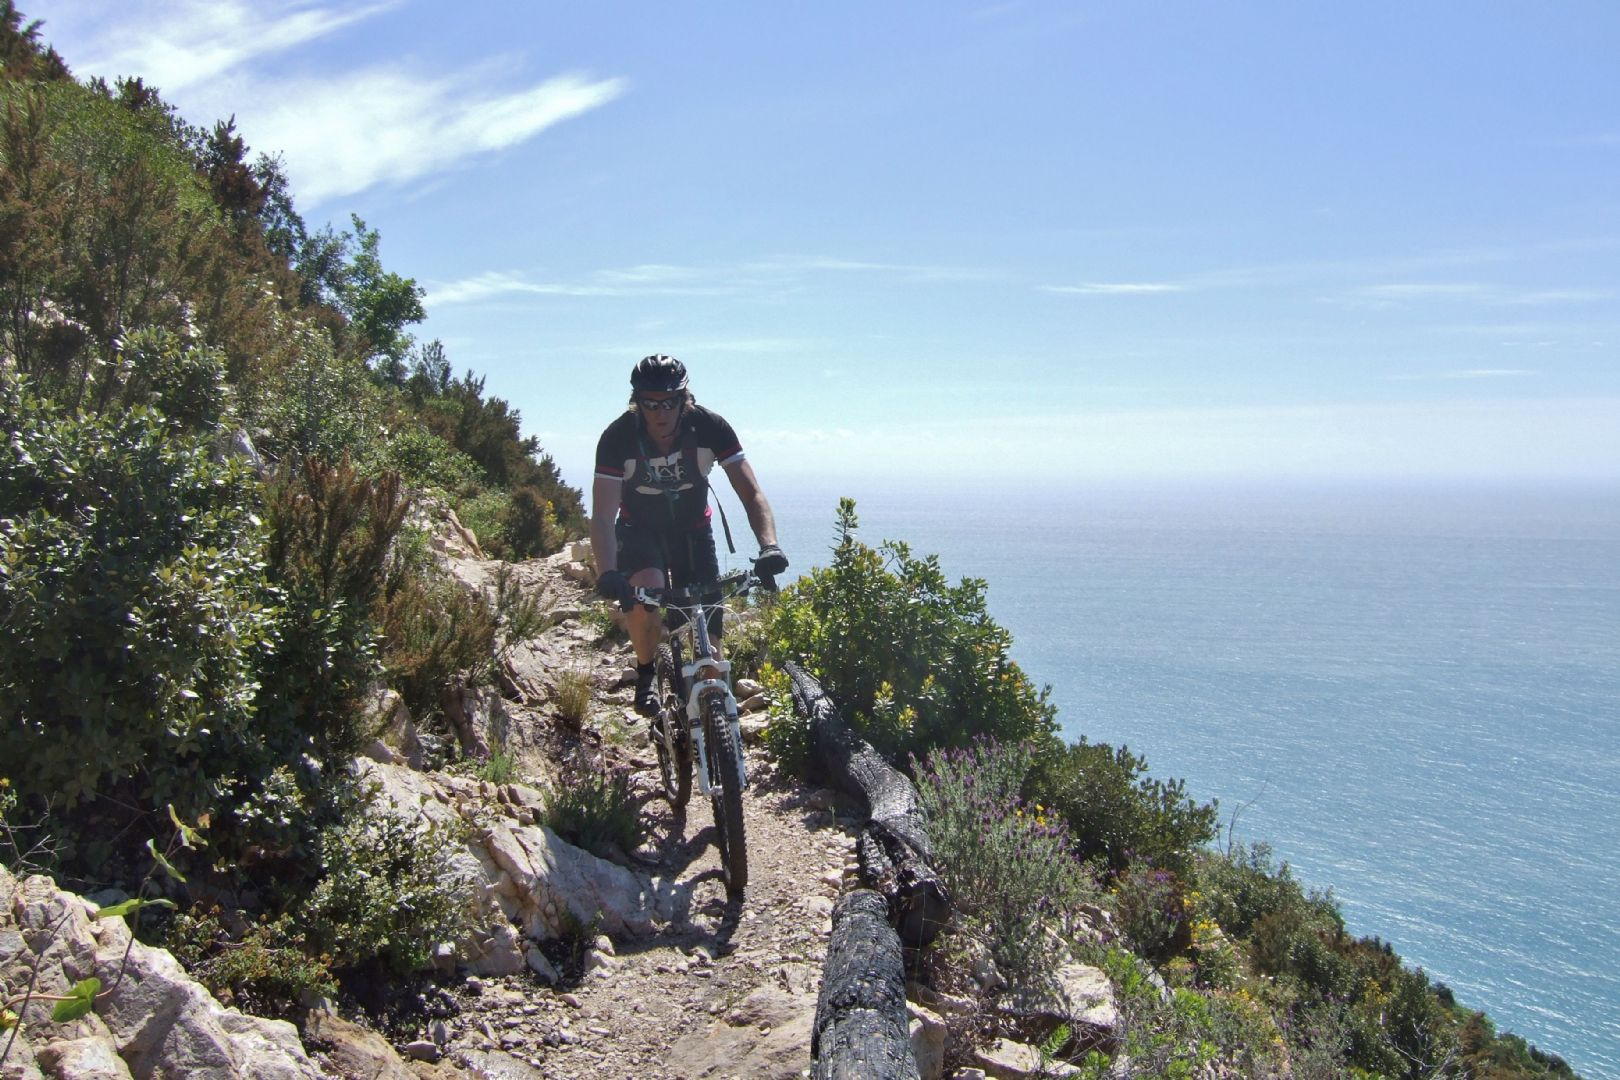 _Customer.23202.10719.jpg - Italy - Liguria - Riding the Riviera - Guided Mountain Bike Holiday - Italia Mountain Biking